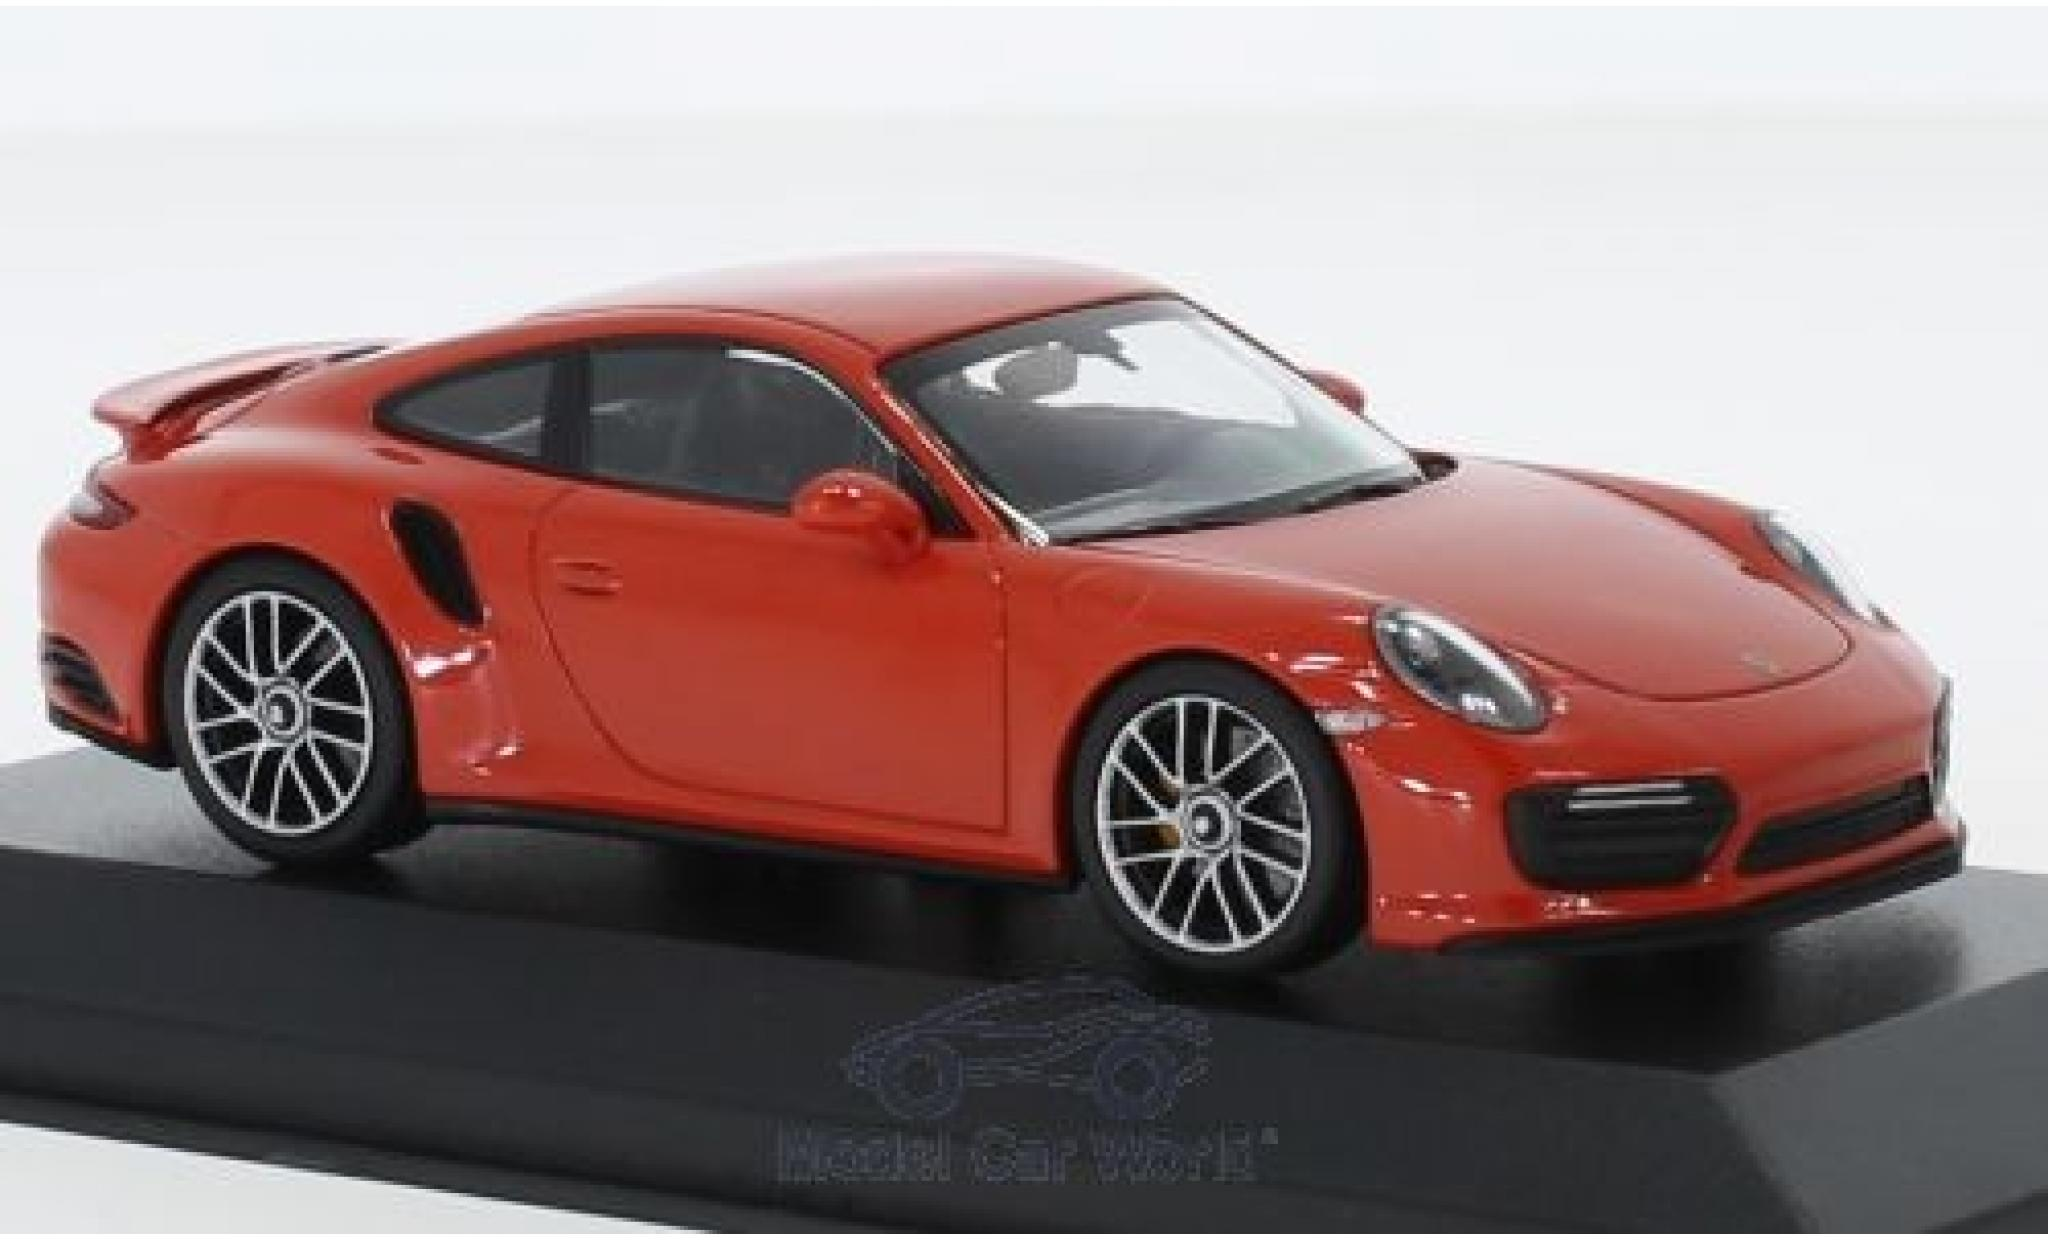 Porsche 911 1/43 Minichamps (991.2) Turbo S orange 2017